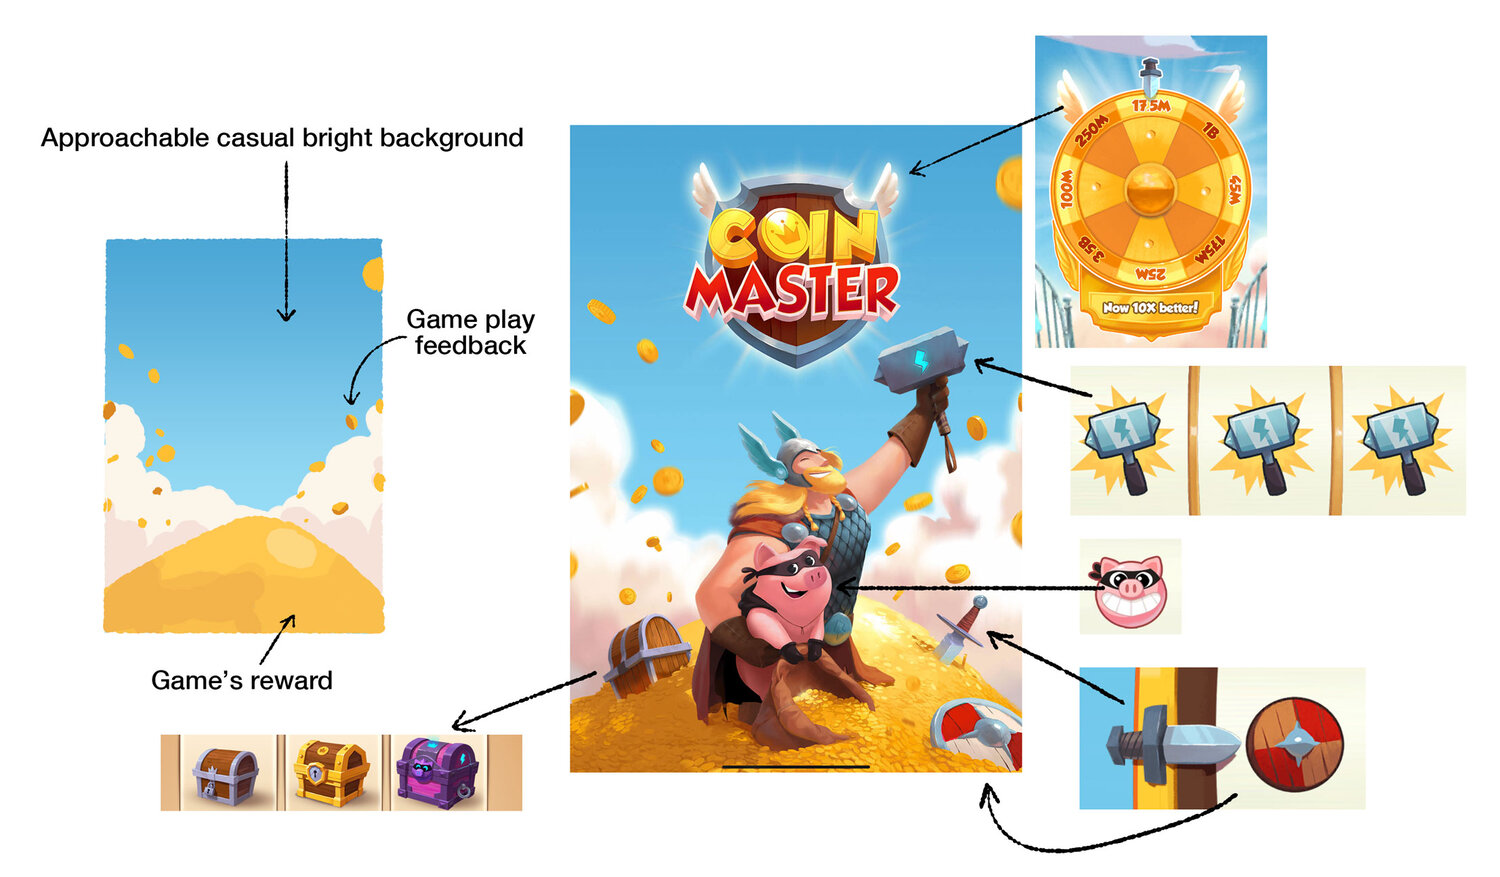 Coin Master Splash screen is a clean visual with clear message about what to expect